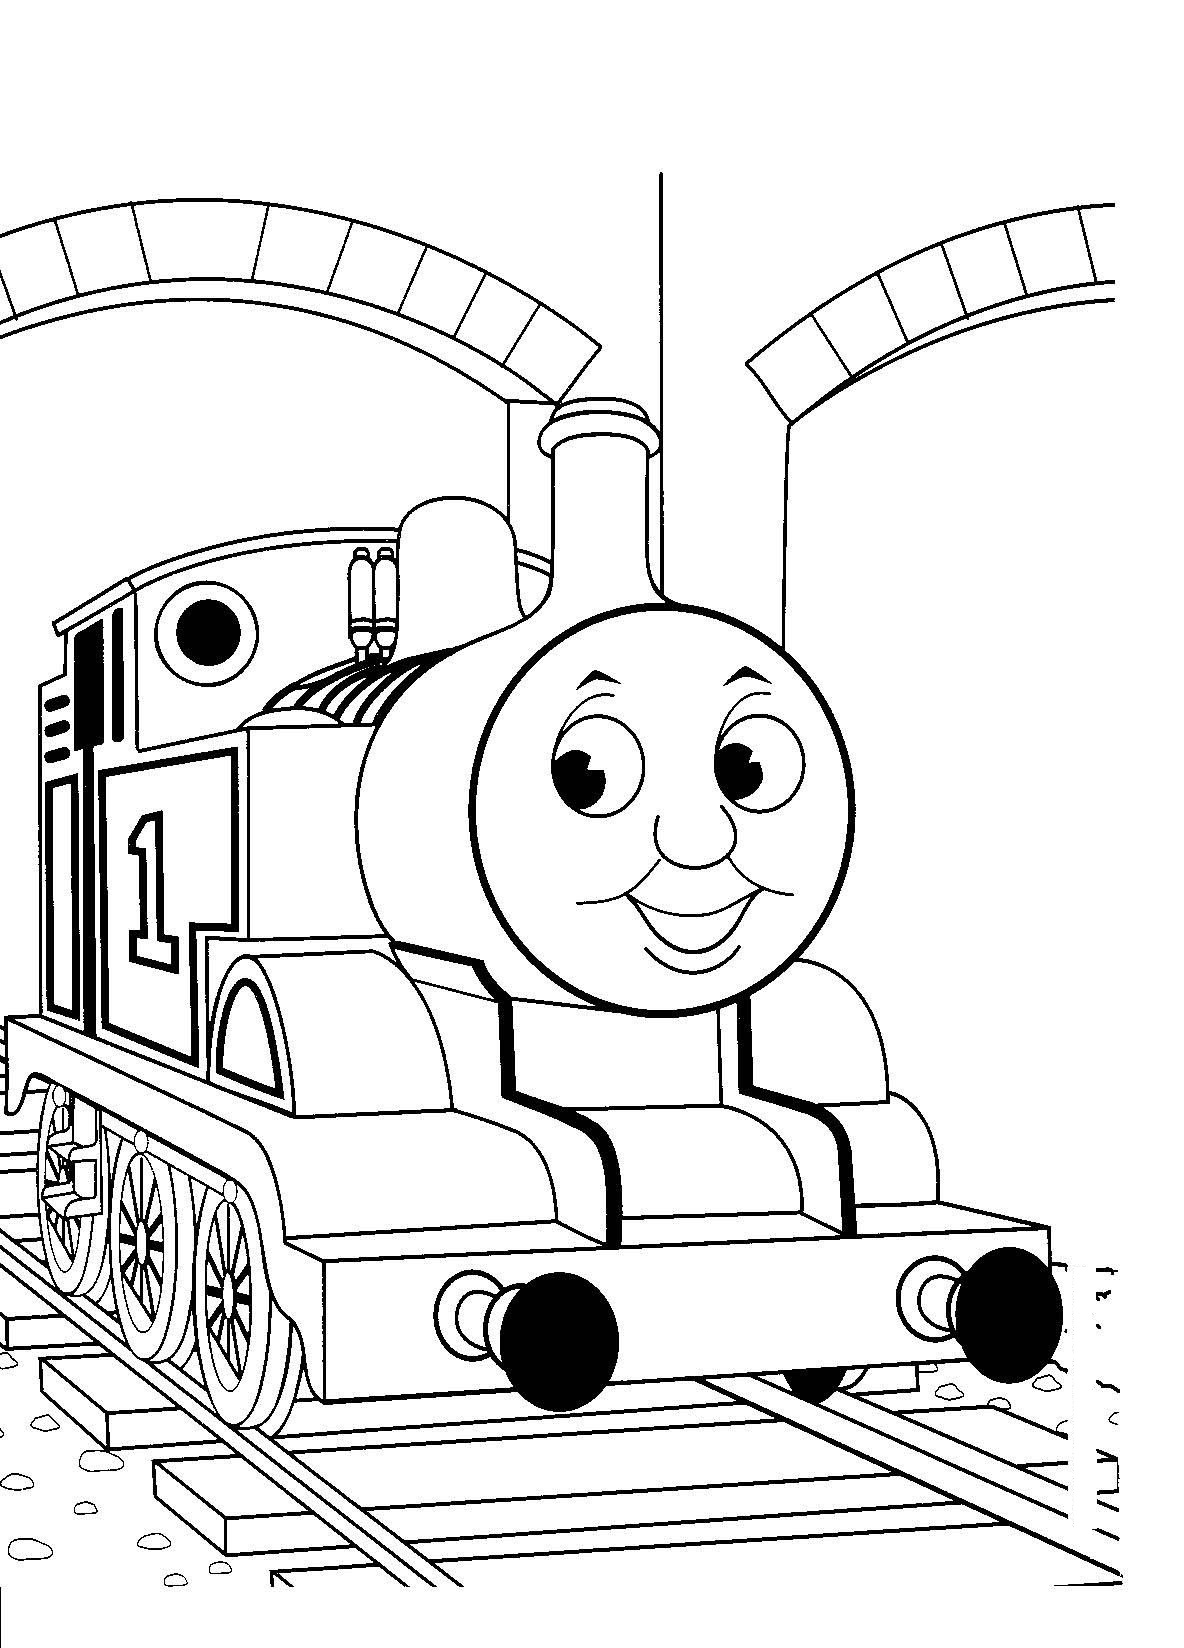 free printable thomas the train coloring pages - Free Coloring Worksheets